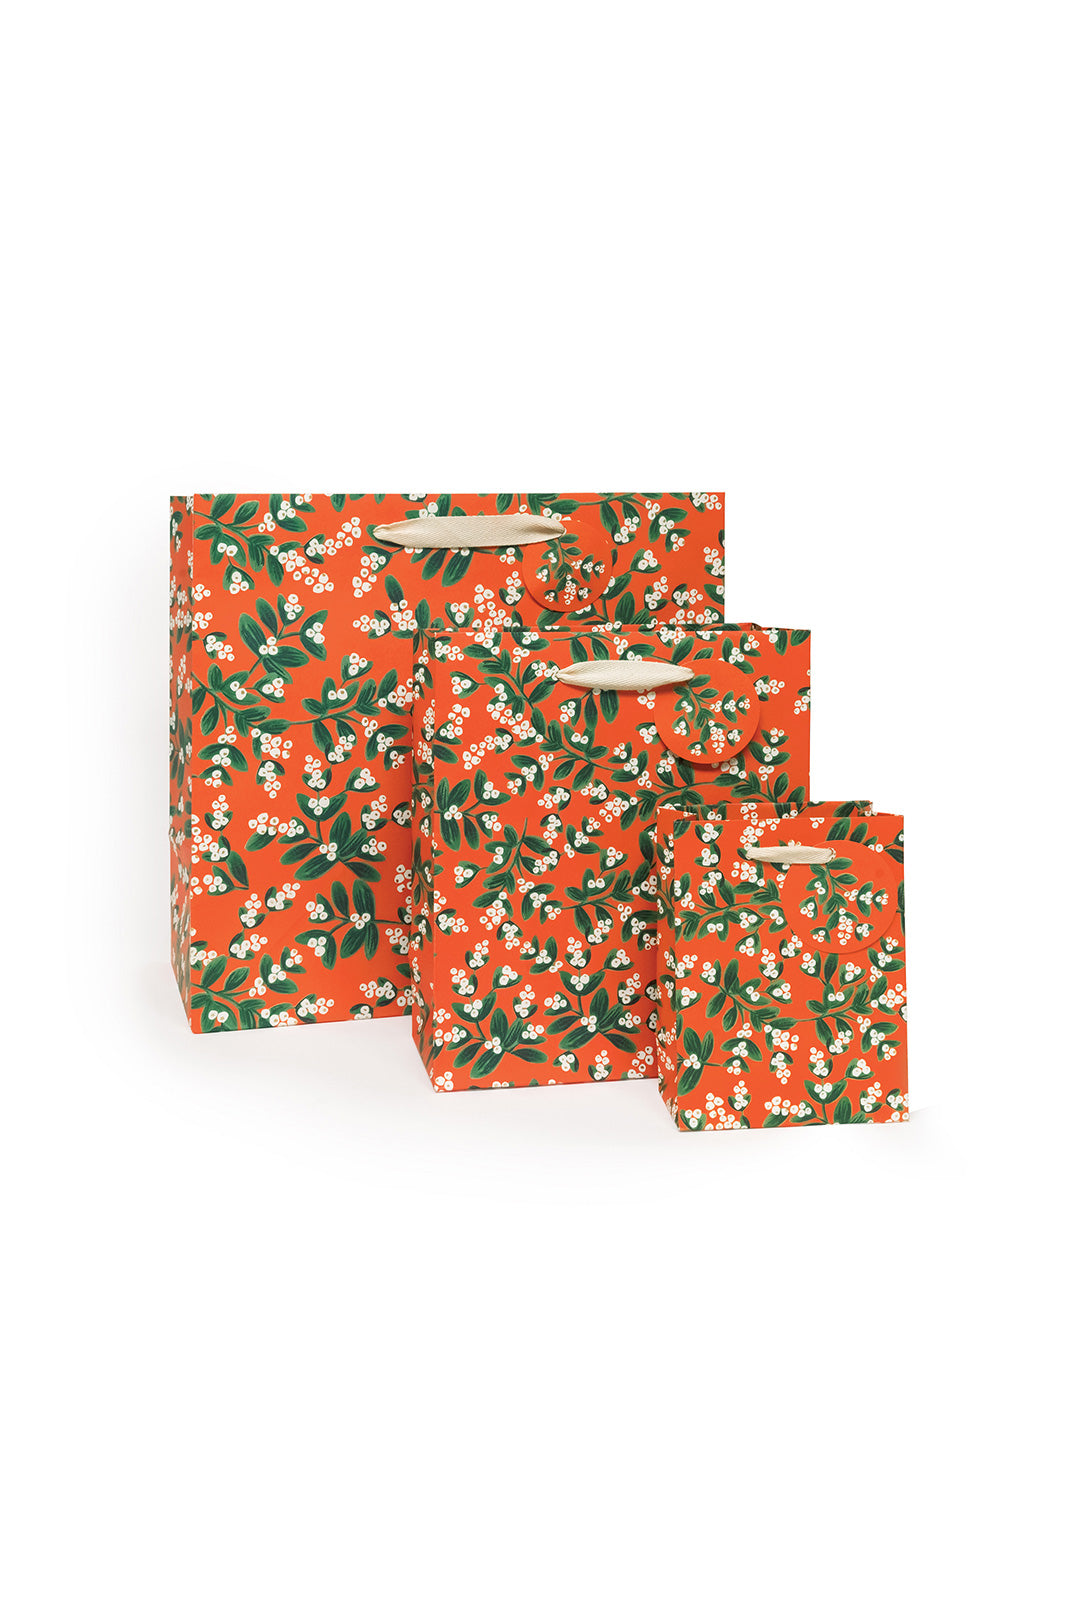 Rifle Paper Co - Gift Bag - Medium - Mistletoe